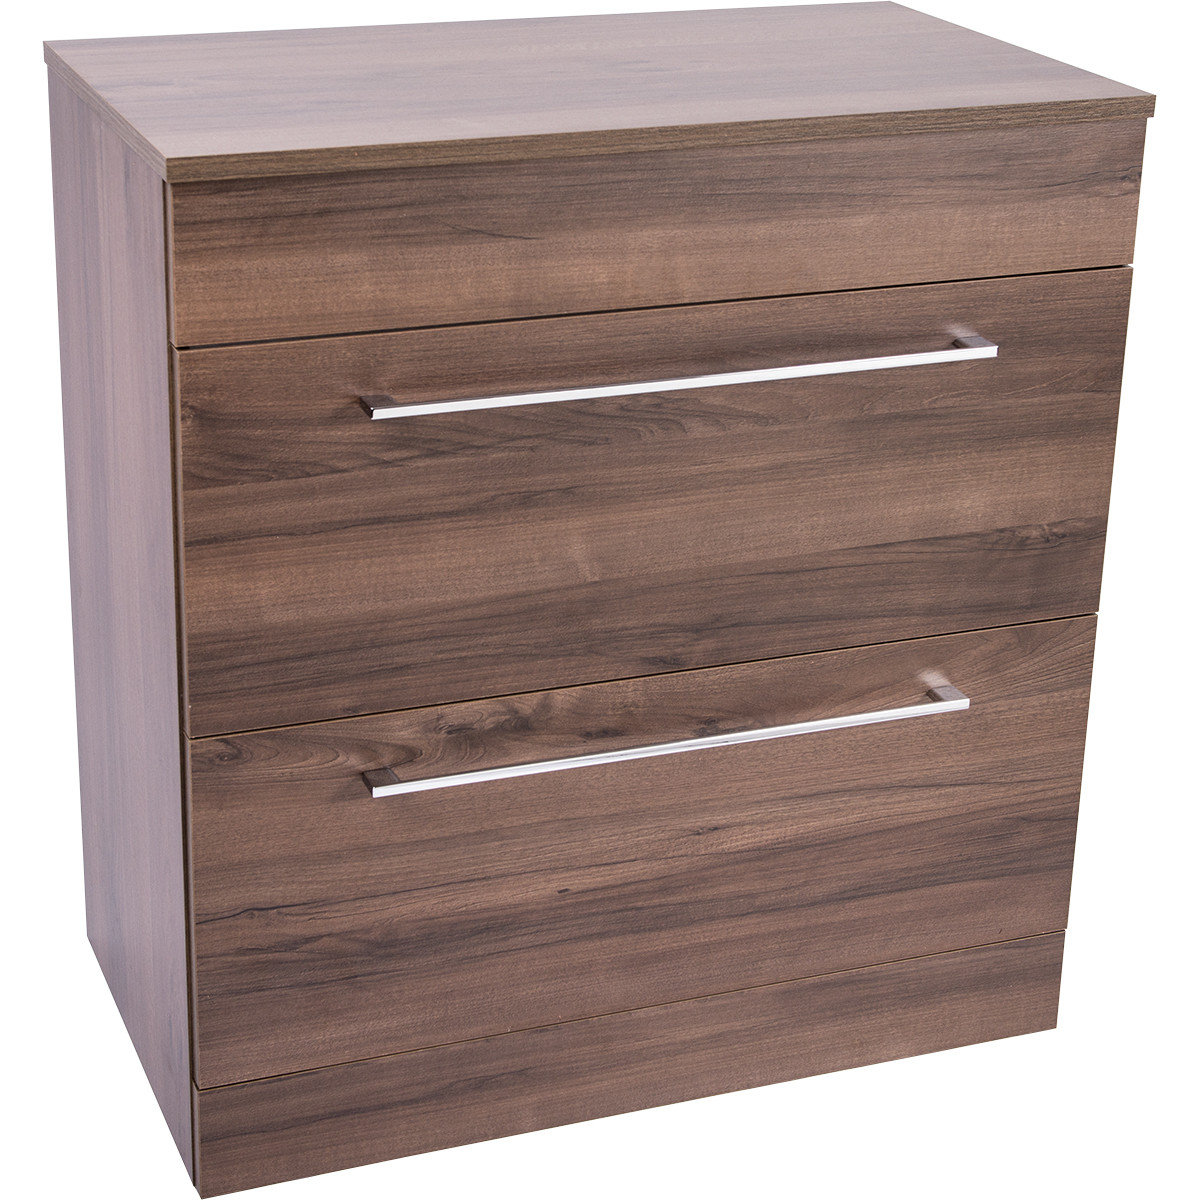 Napoli Walnut 2 Drawer 800 Unit & Top